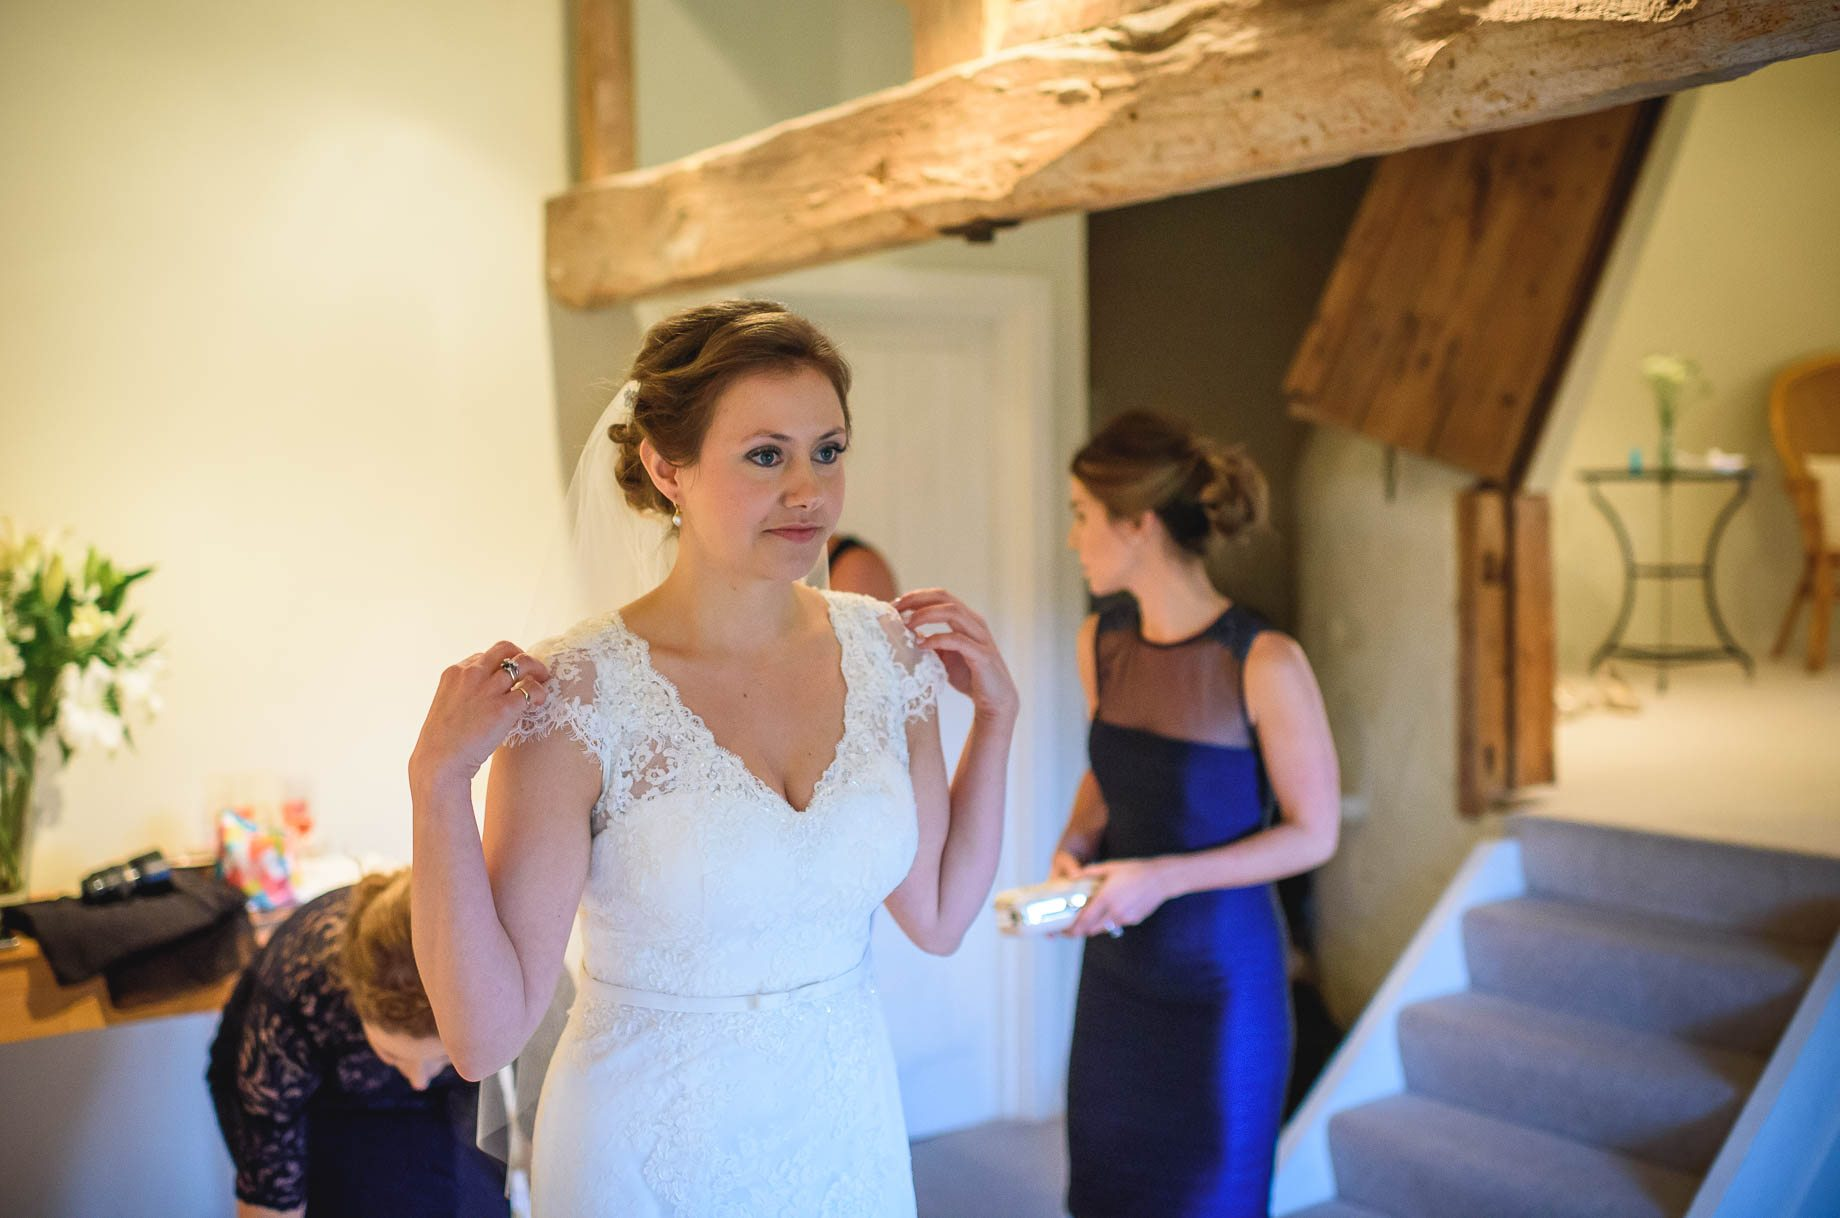 Bury Court Barn wedding photography - Ashley and Henry by Guy Collier Photography (31 of 188)